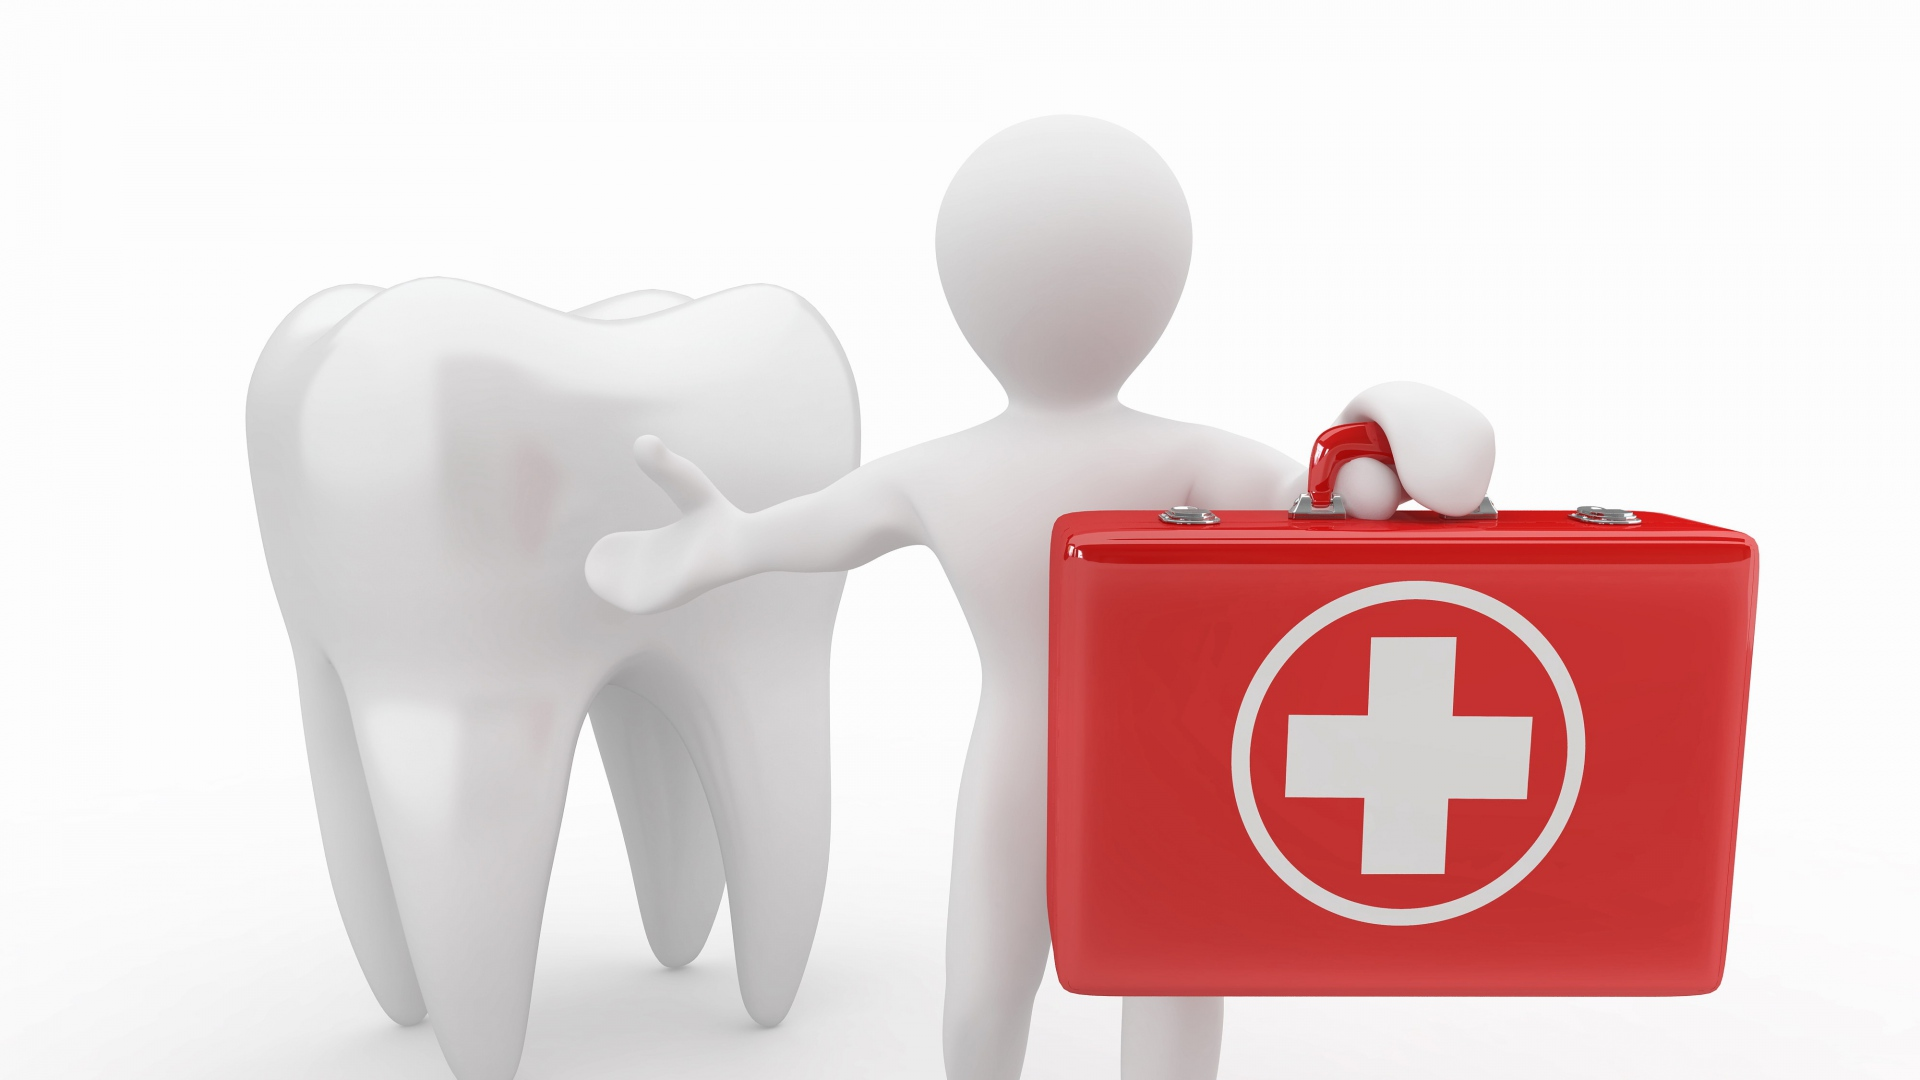 Download Wallpaper 1920x1080 Tooth Man Health Dental Suitcase